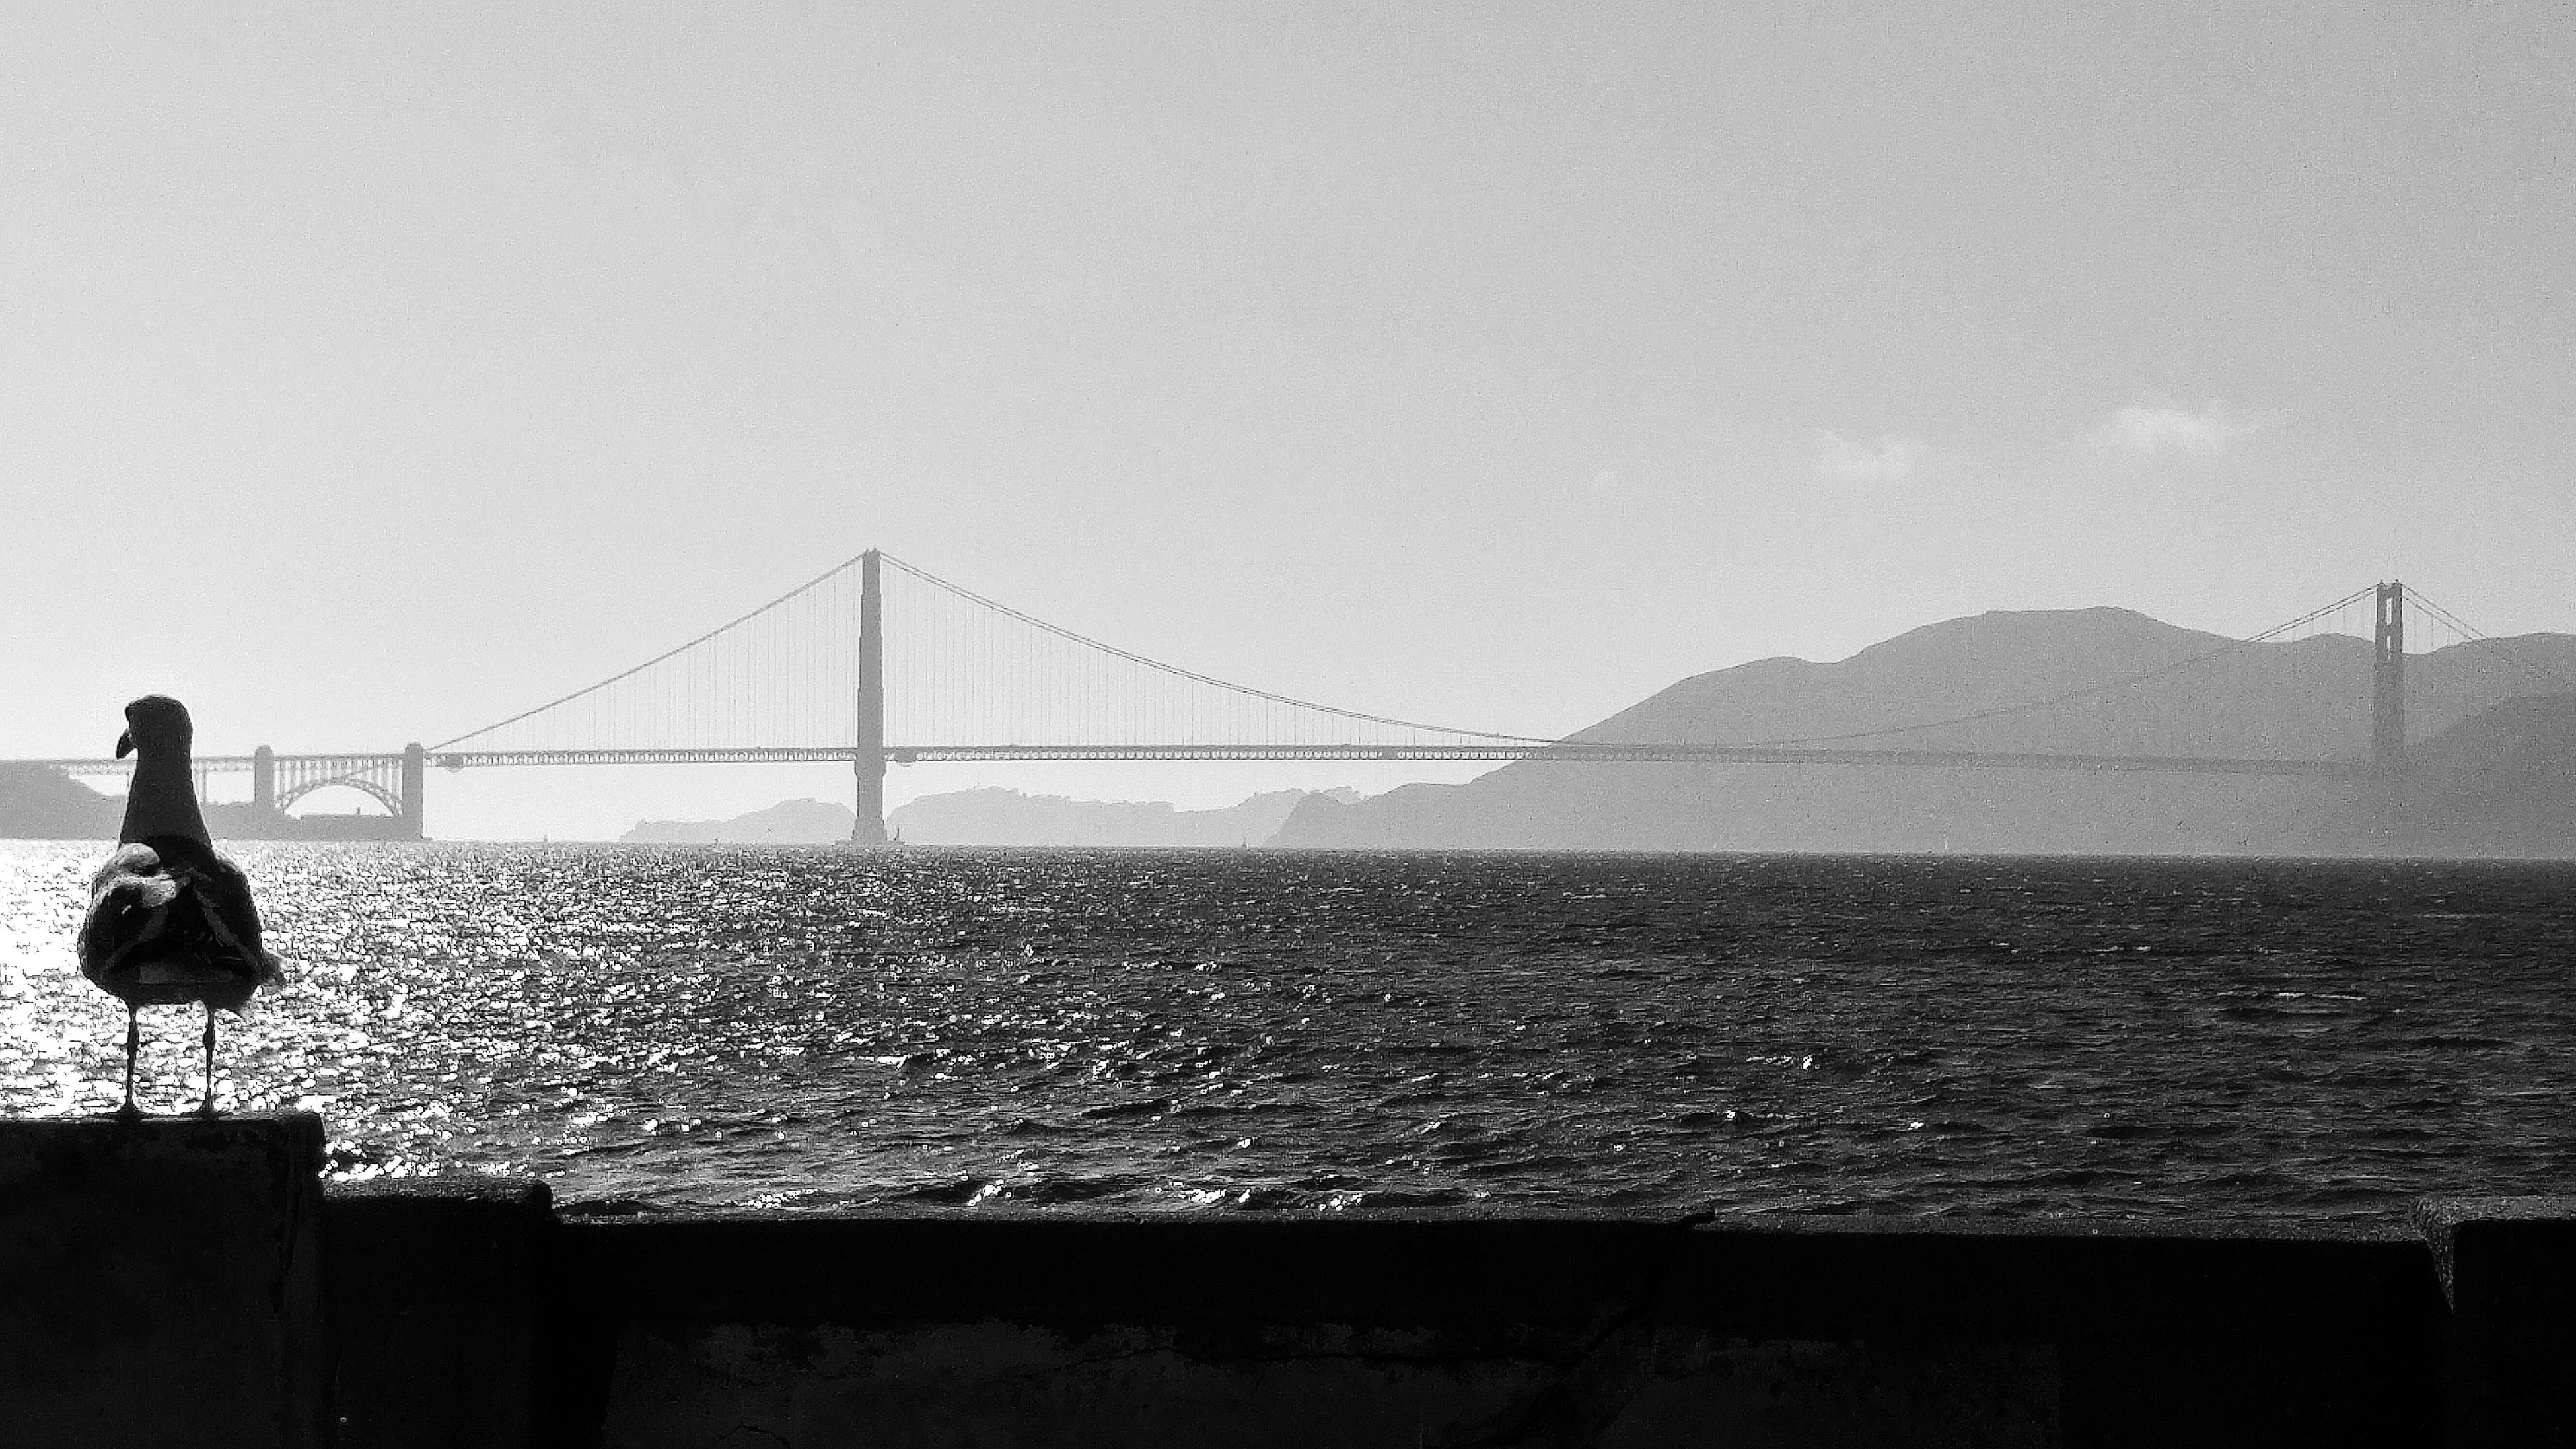 water, sea, clear sky, copy space, connection, built structure, architecture, sky, silhouette, nature, scenics, railing, bridge - man made structure, tranquility, tranquil scene, horizon over water, beauty in nature, outdoors, bird, street light